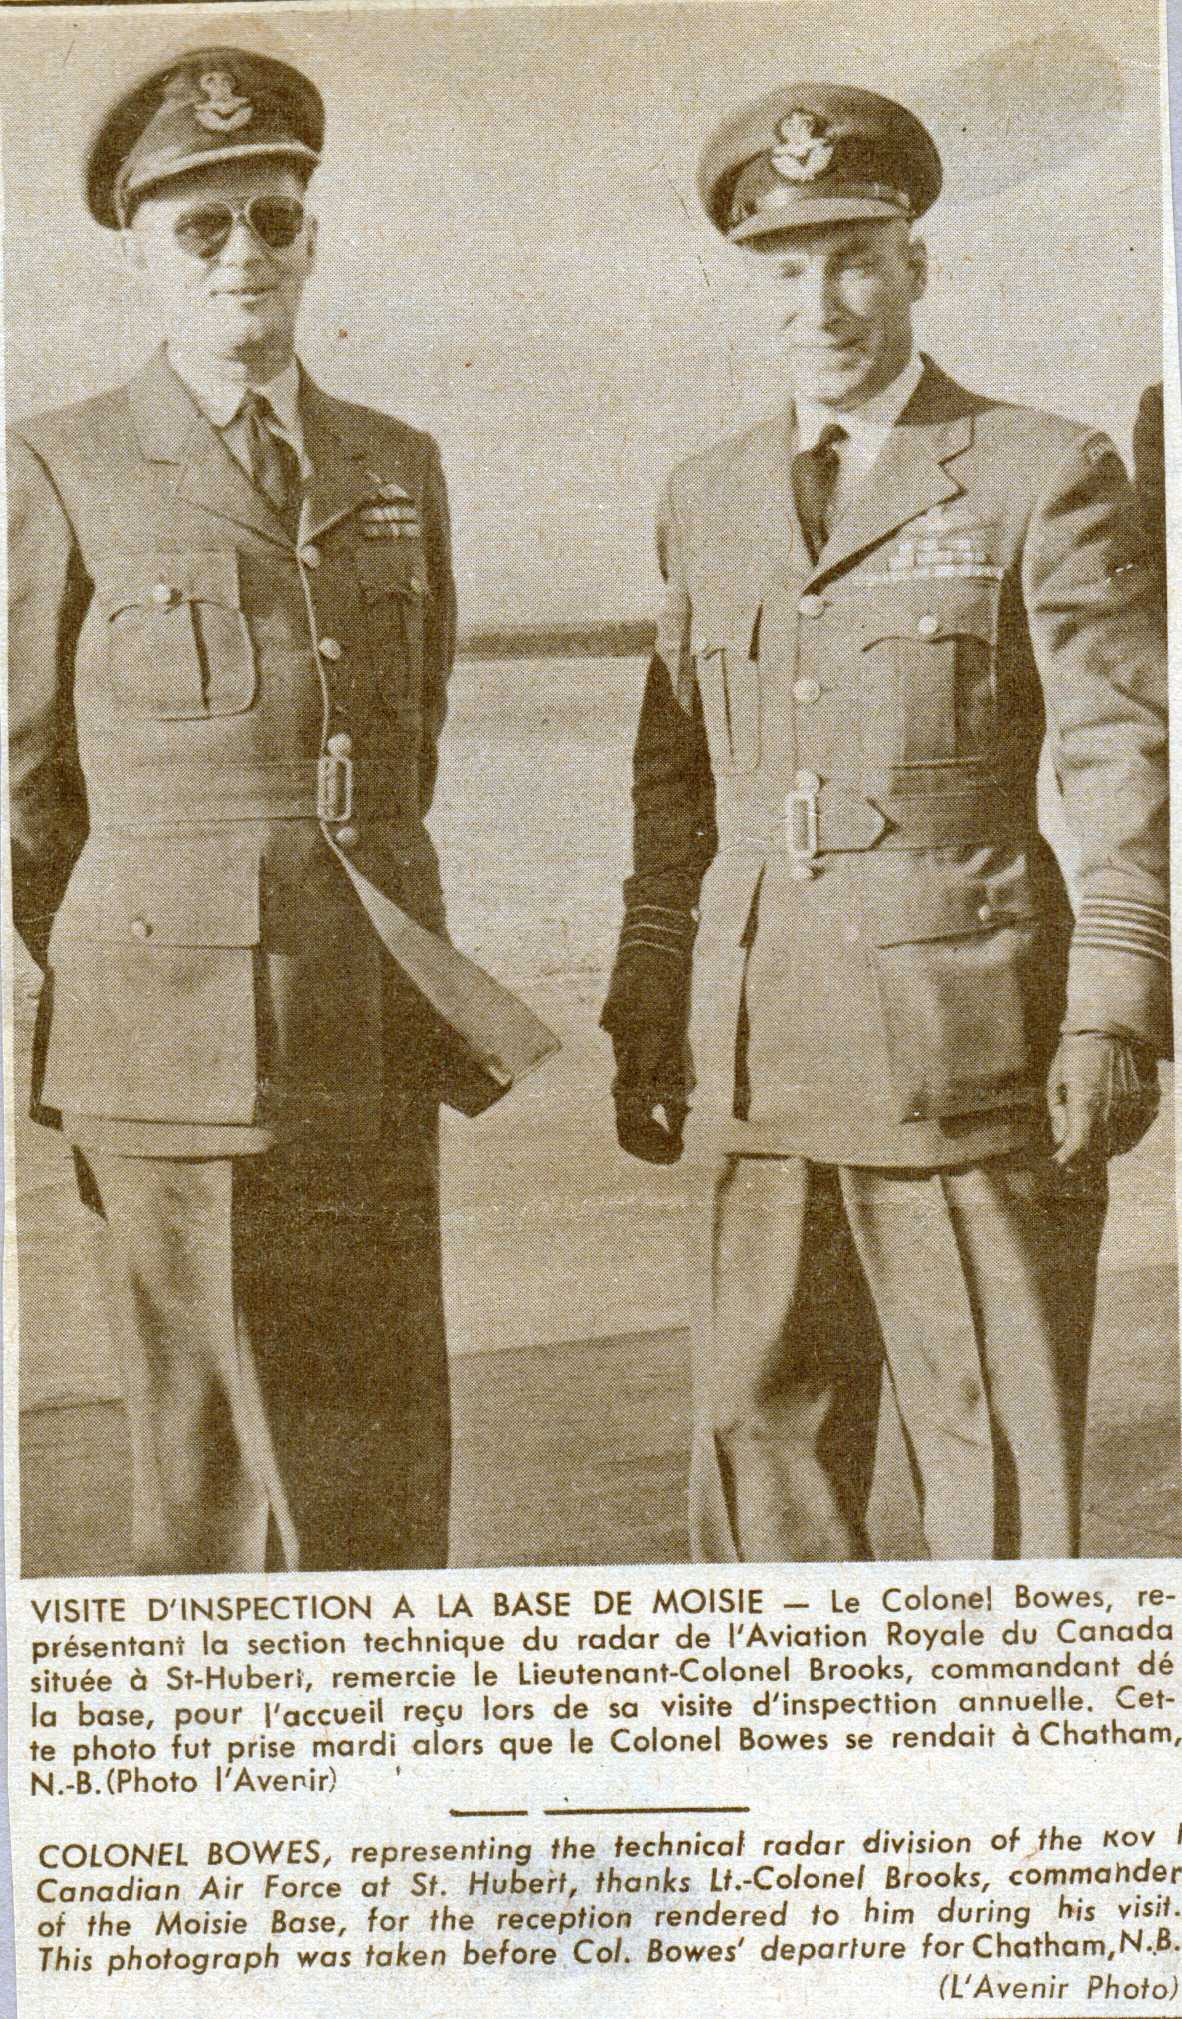 Photo: Colonel Bowes Inspection of RCAF Moisie, W/C Hubert Brooksalso in photo